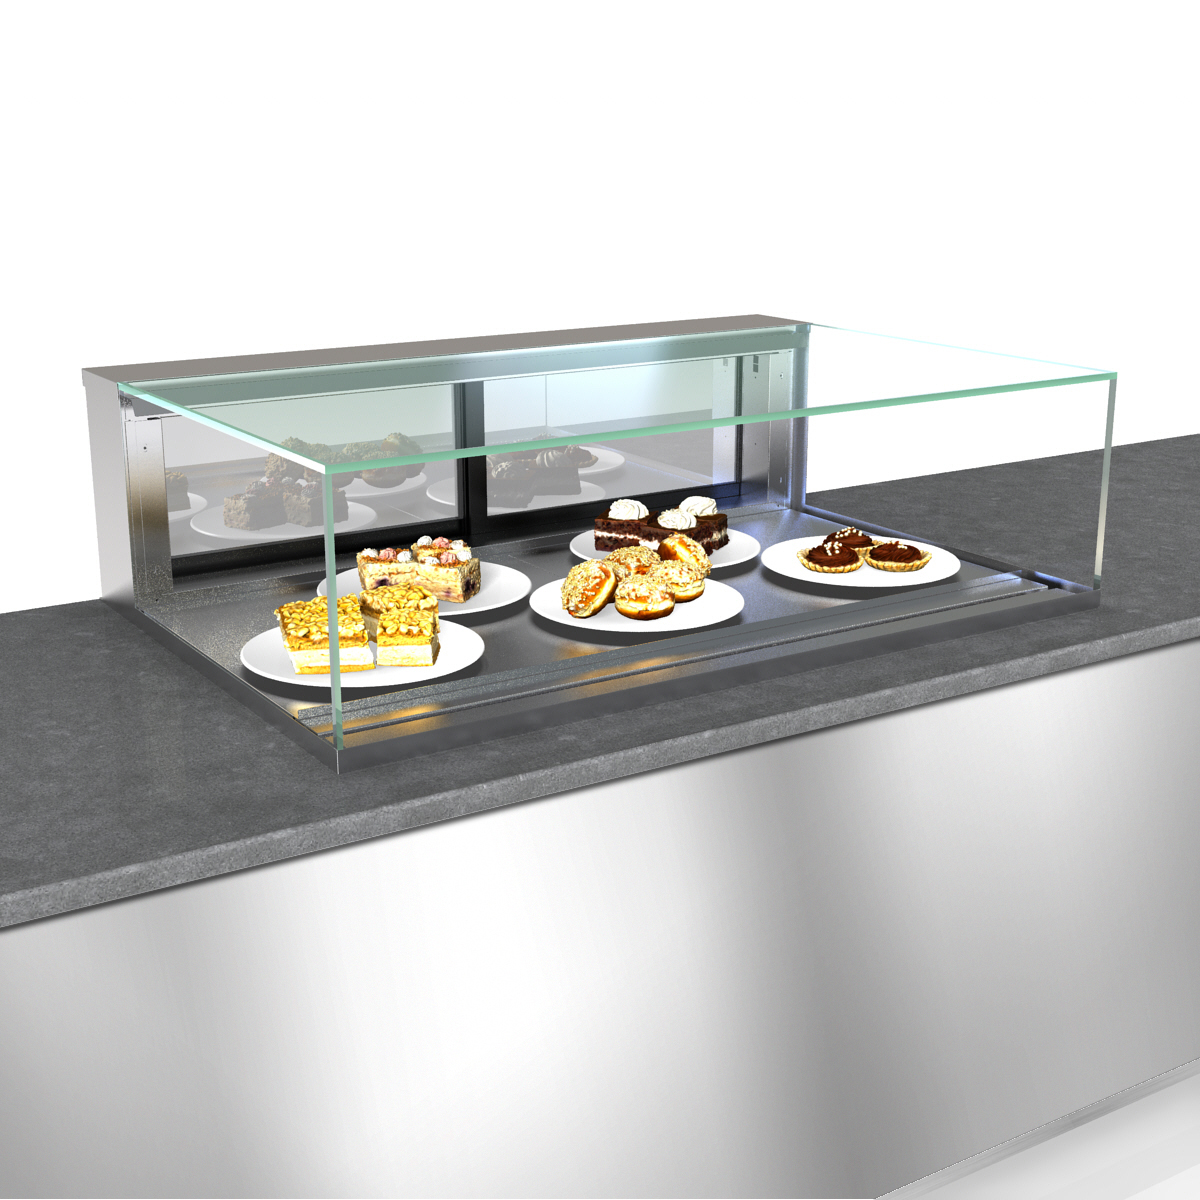 Structural Concepts NE3613DSV display case, non-refrigerated, slide in counter